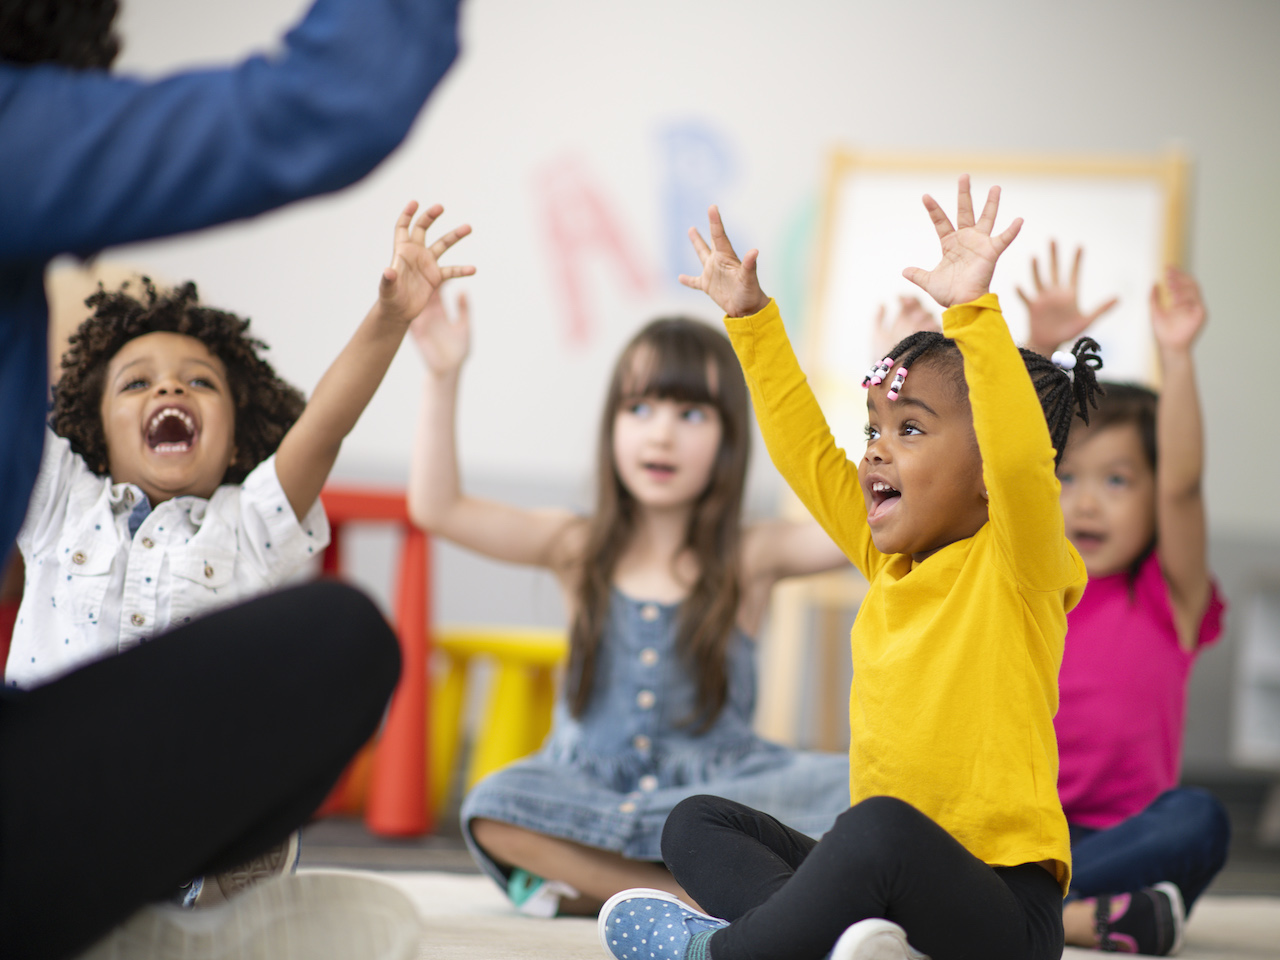 A group of preschool students is sitting with their legs crossed on the floor in their classroom. The mixed-race female teacher is sitting on the floor facing the children. The happy kids are smiling and following the teacher's instructions. They have their arms raised in the air.